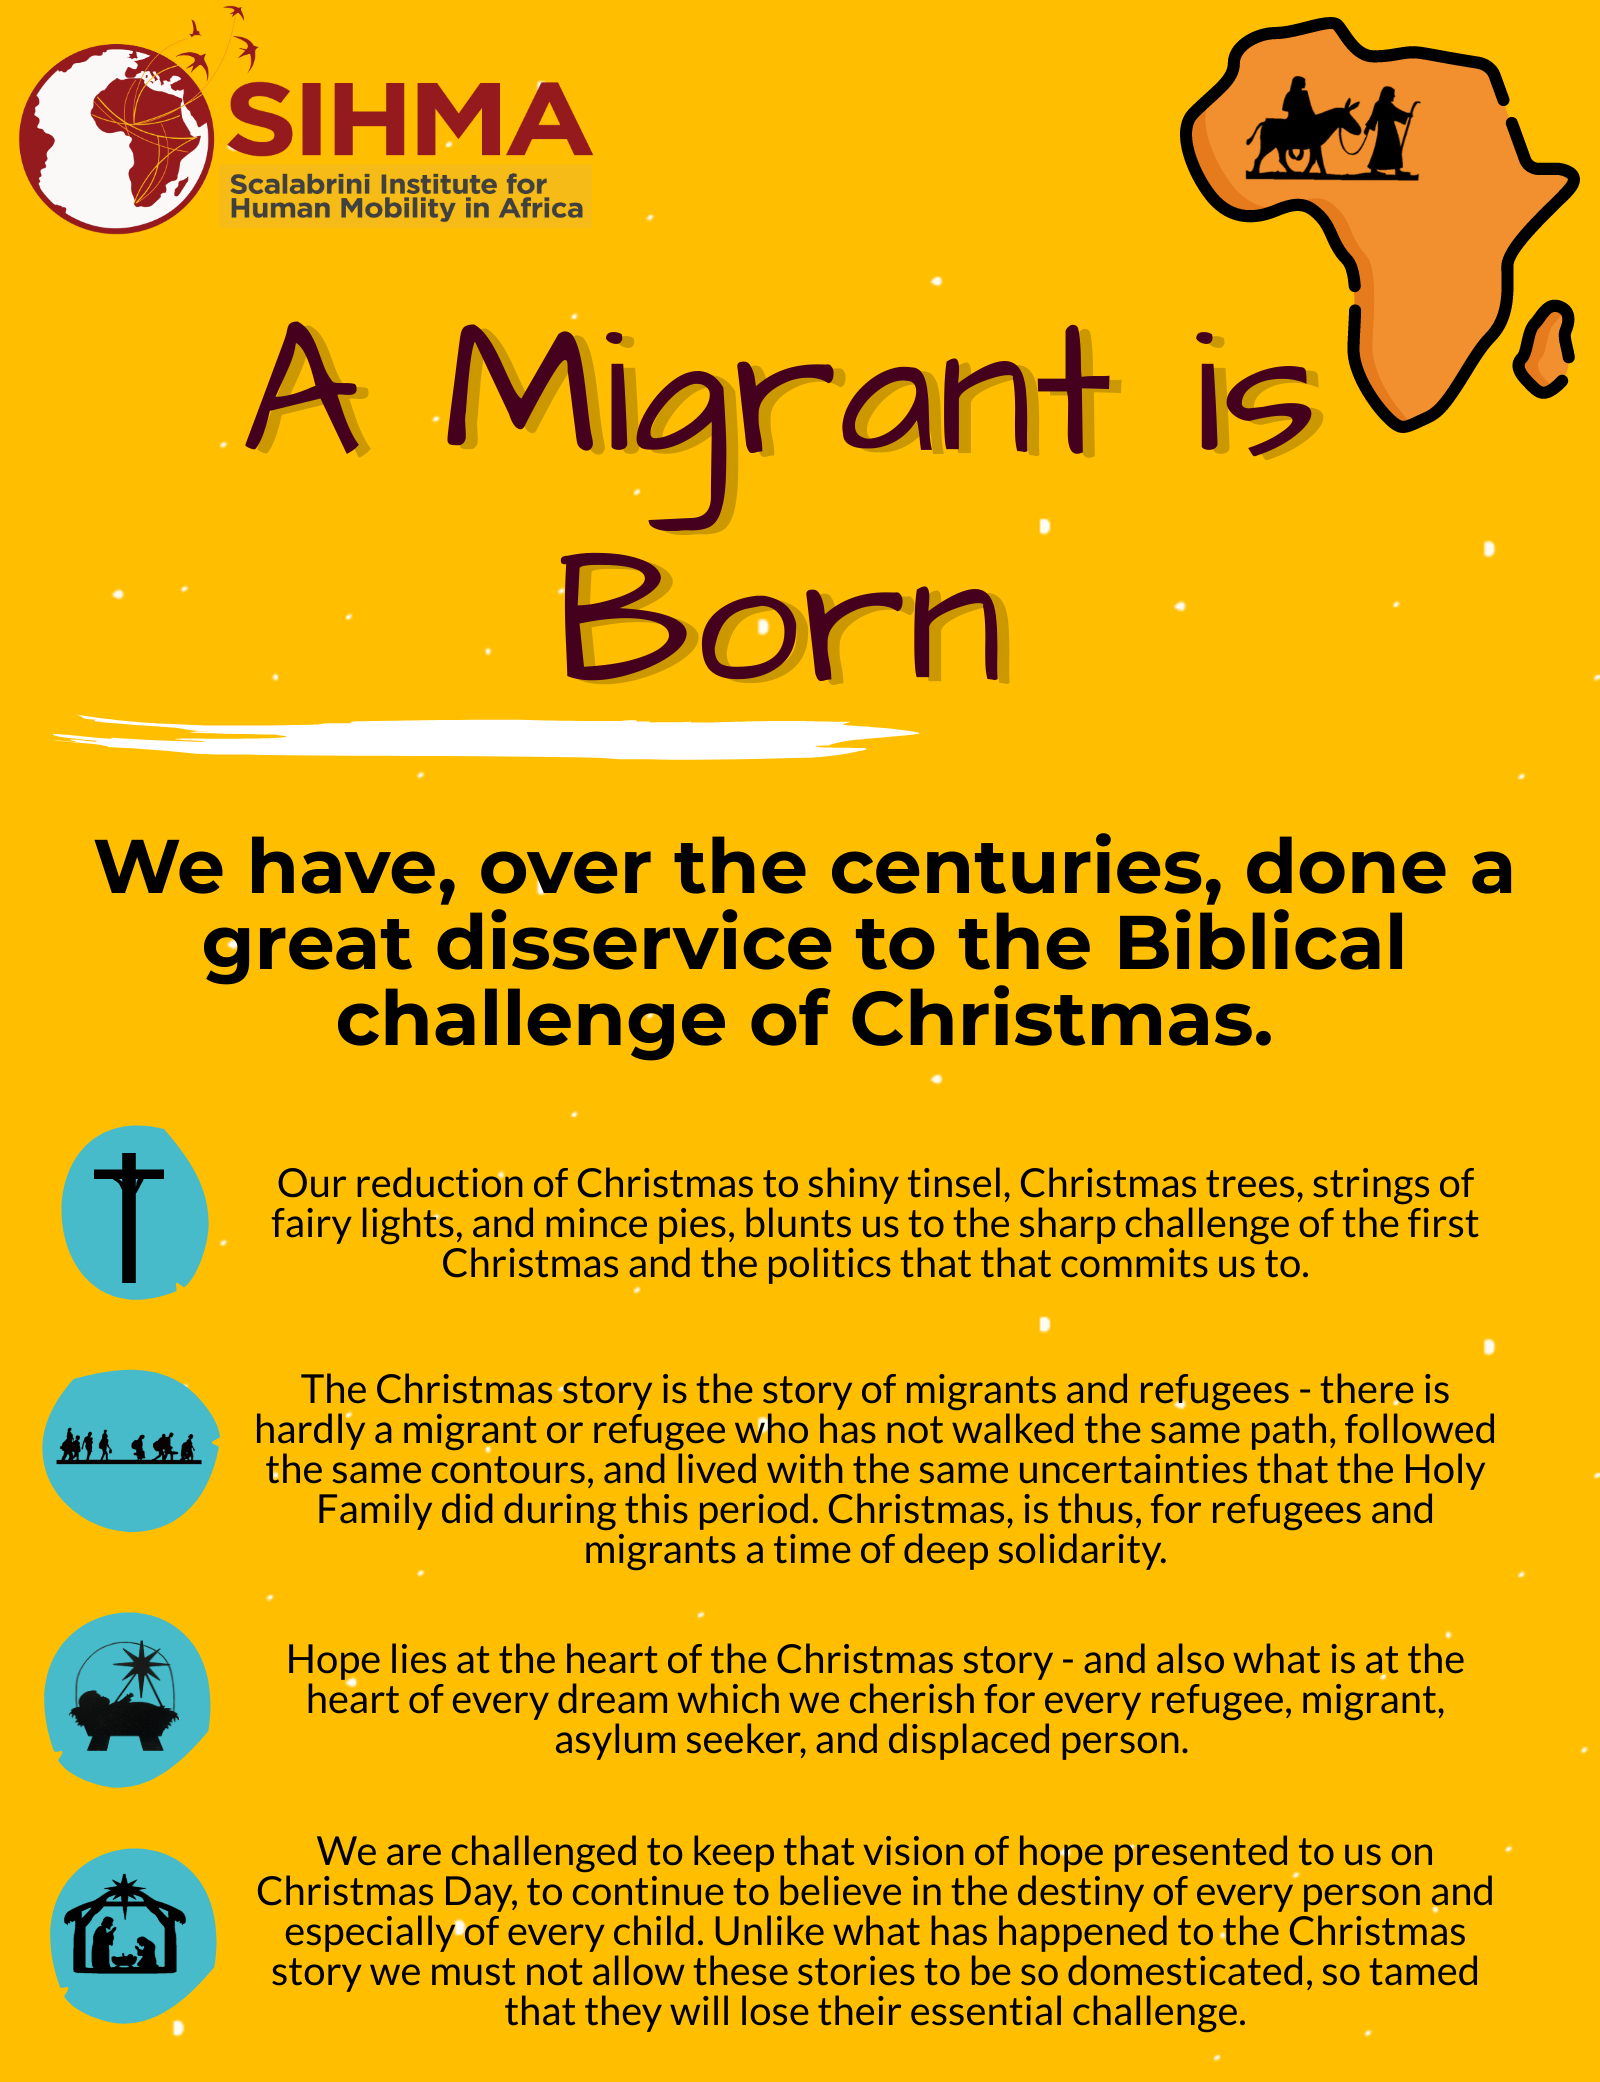 https://sihma.org.za/photos/shares/A Migrant is Born.png